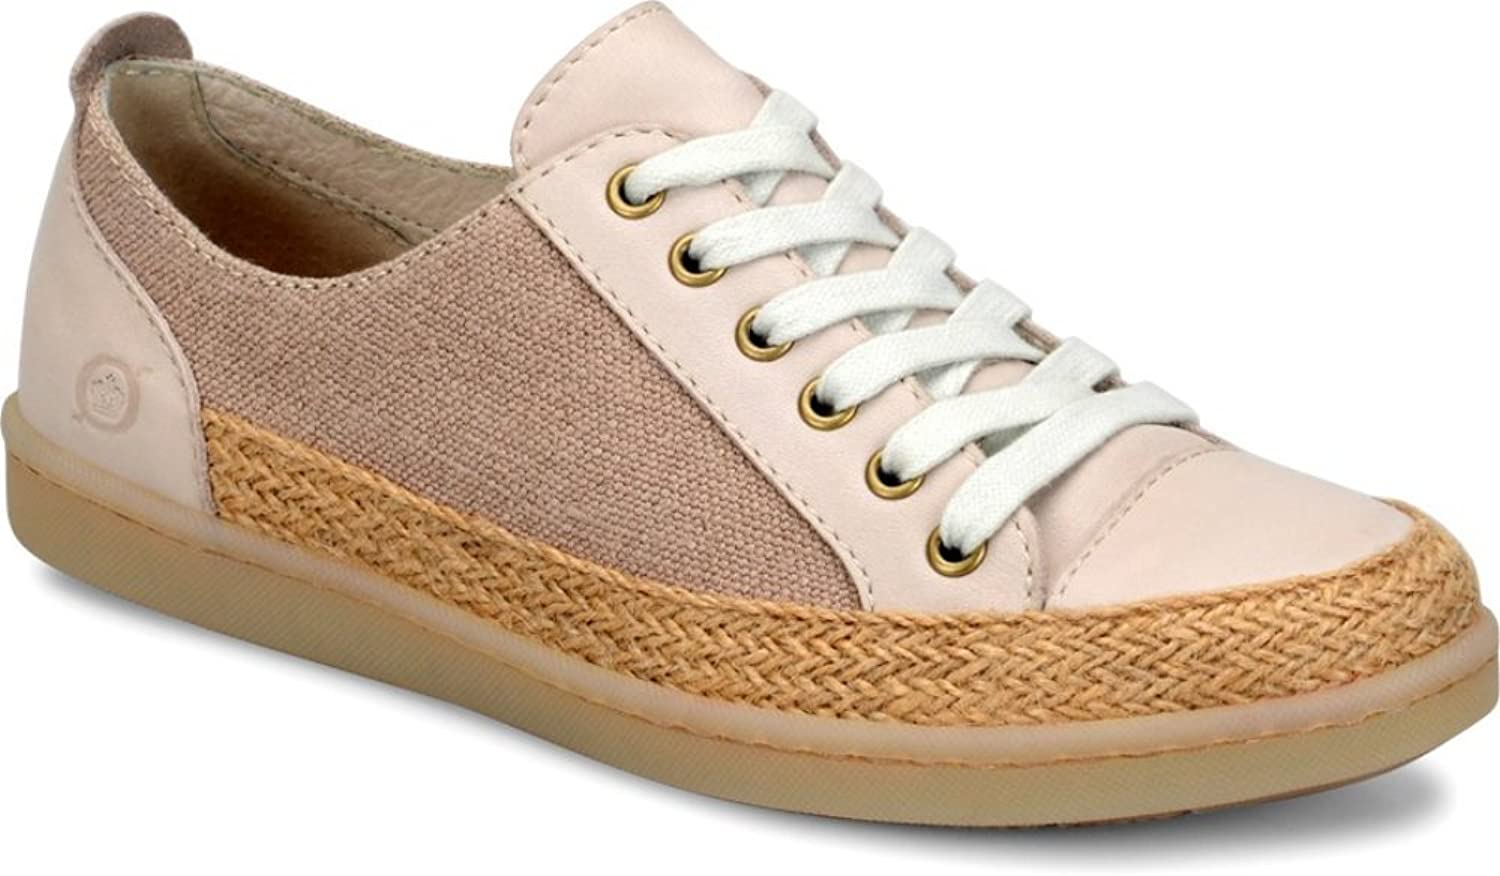 B.O.C. Womens Corfield Canvas Low Top Lace Up Fashion Sneakers